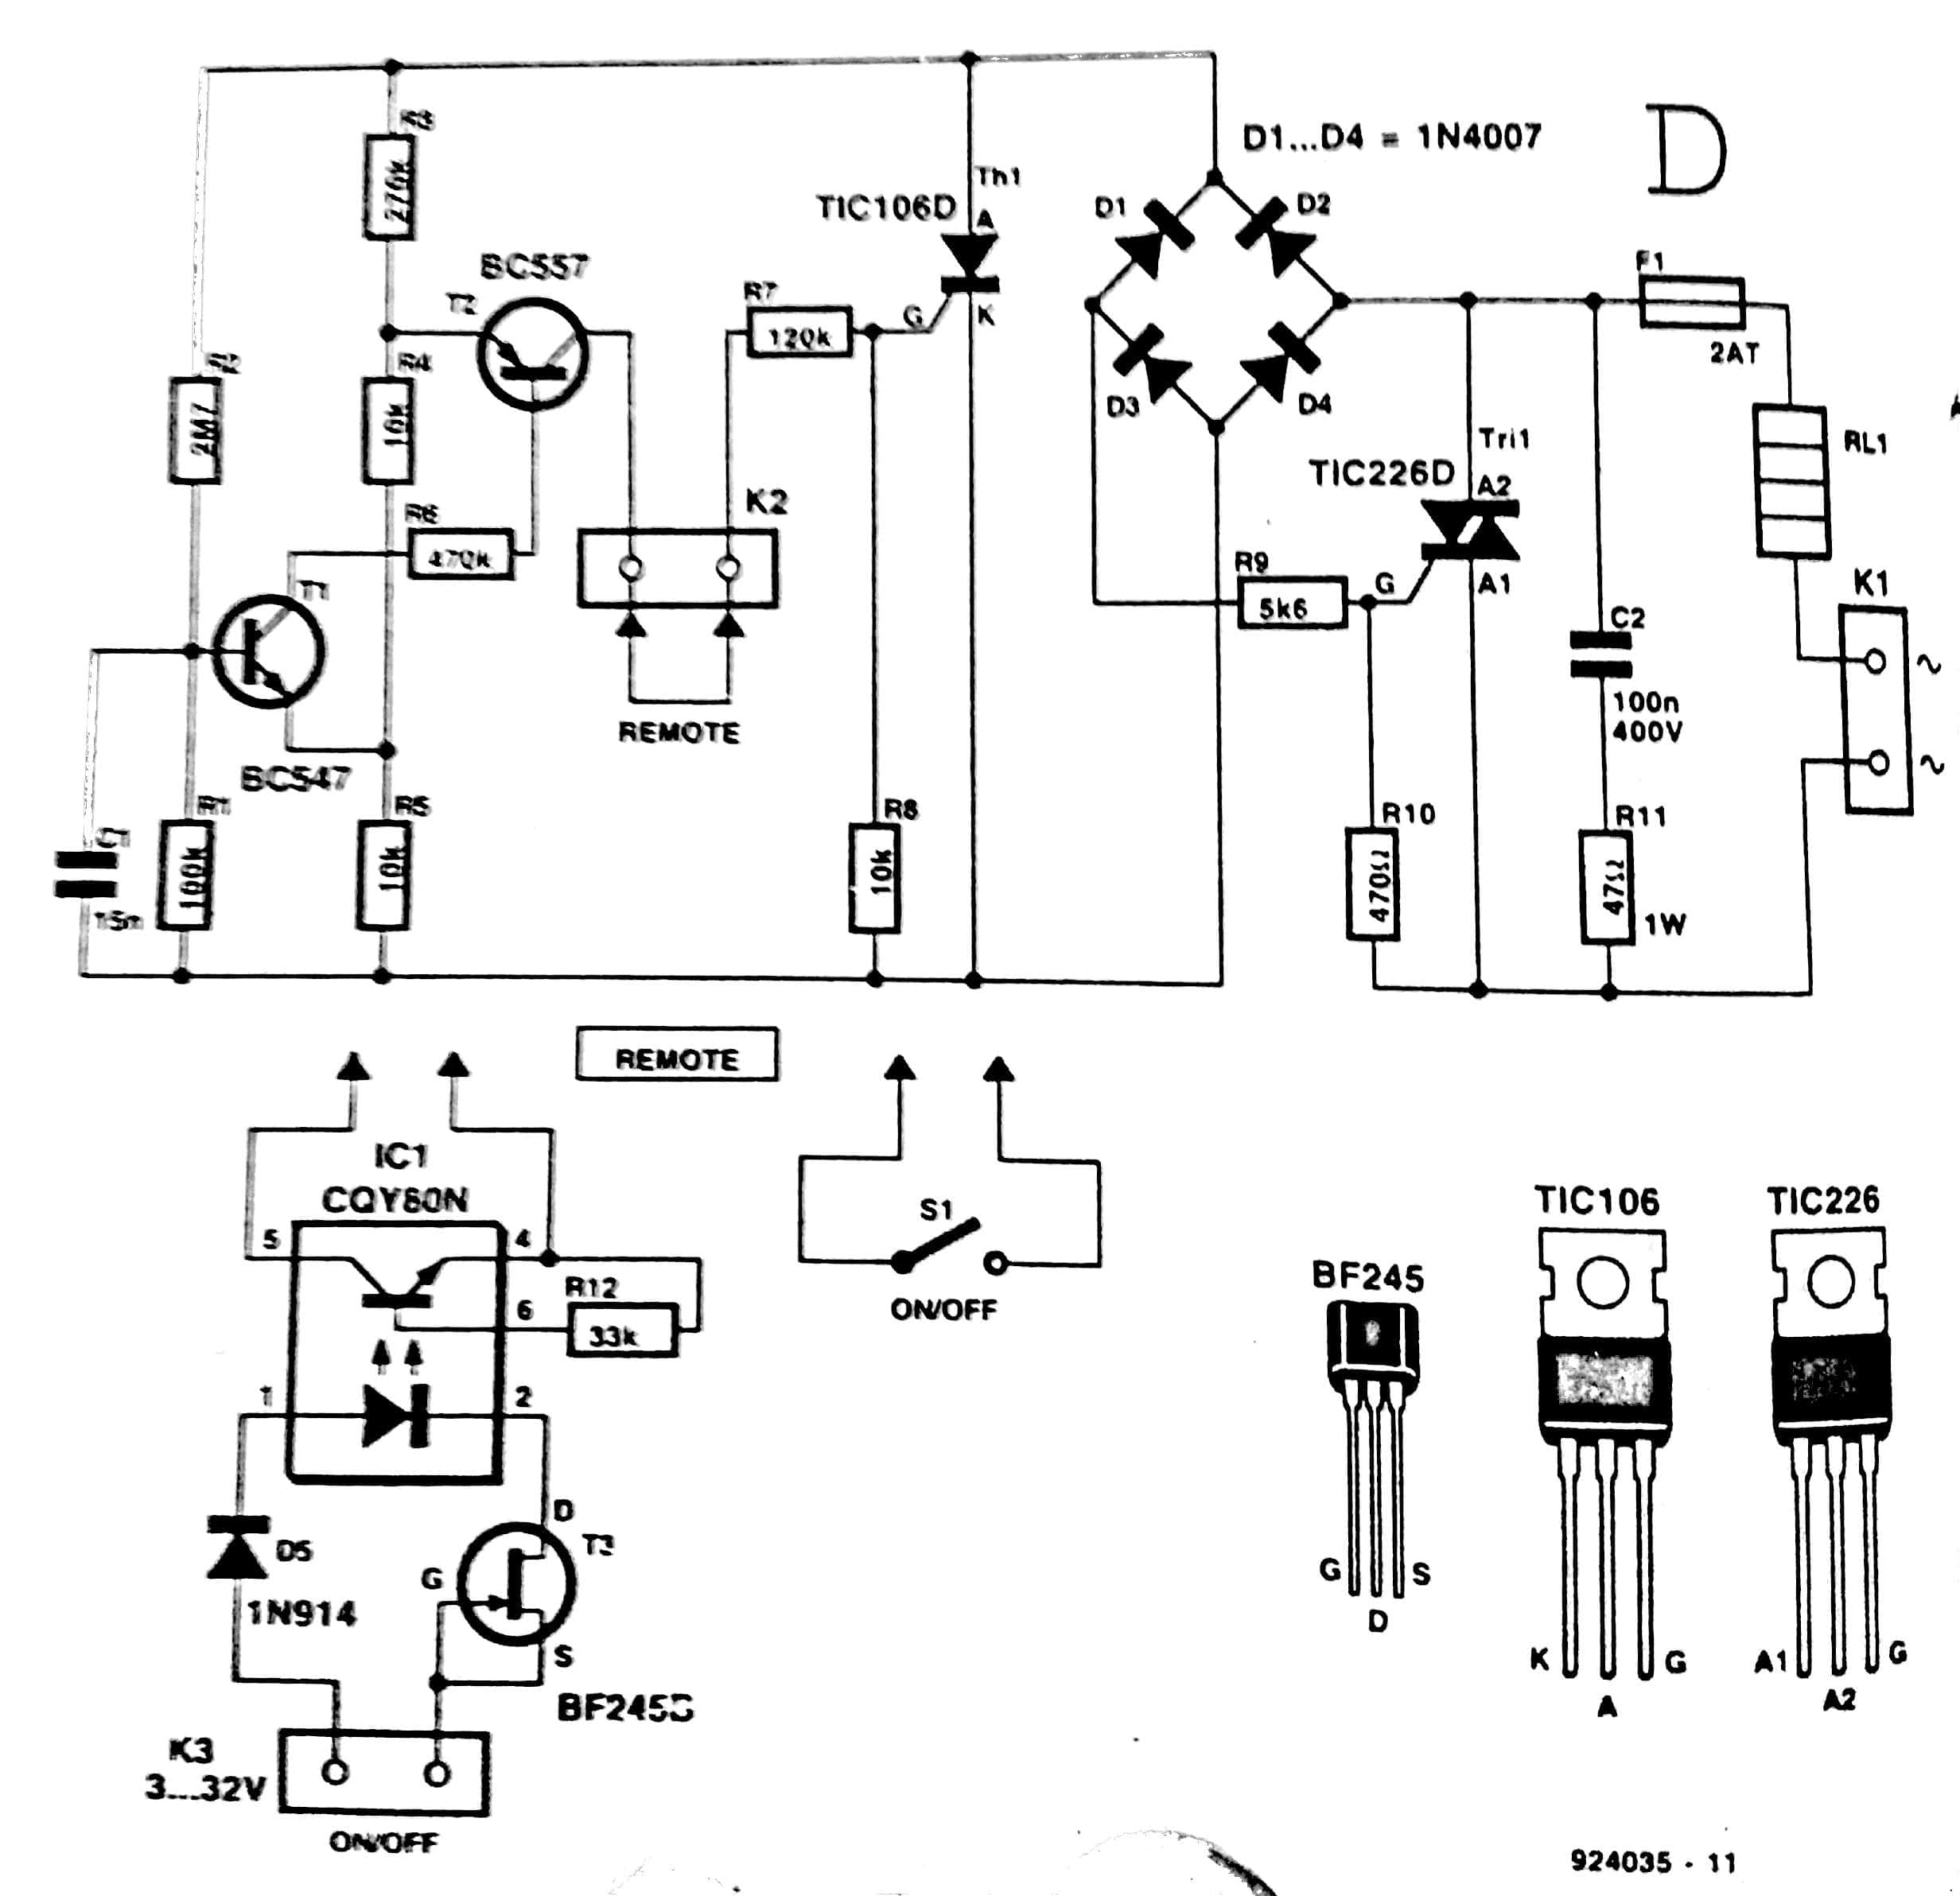 voltage converter 240 v ac to 110 v ac circuit diagram power converter wiring diagram coleman cts15 #3